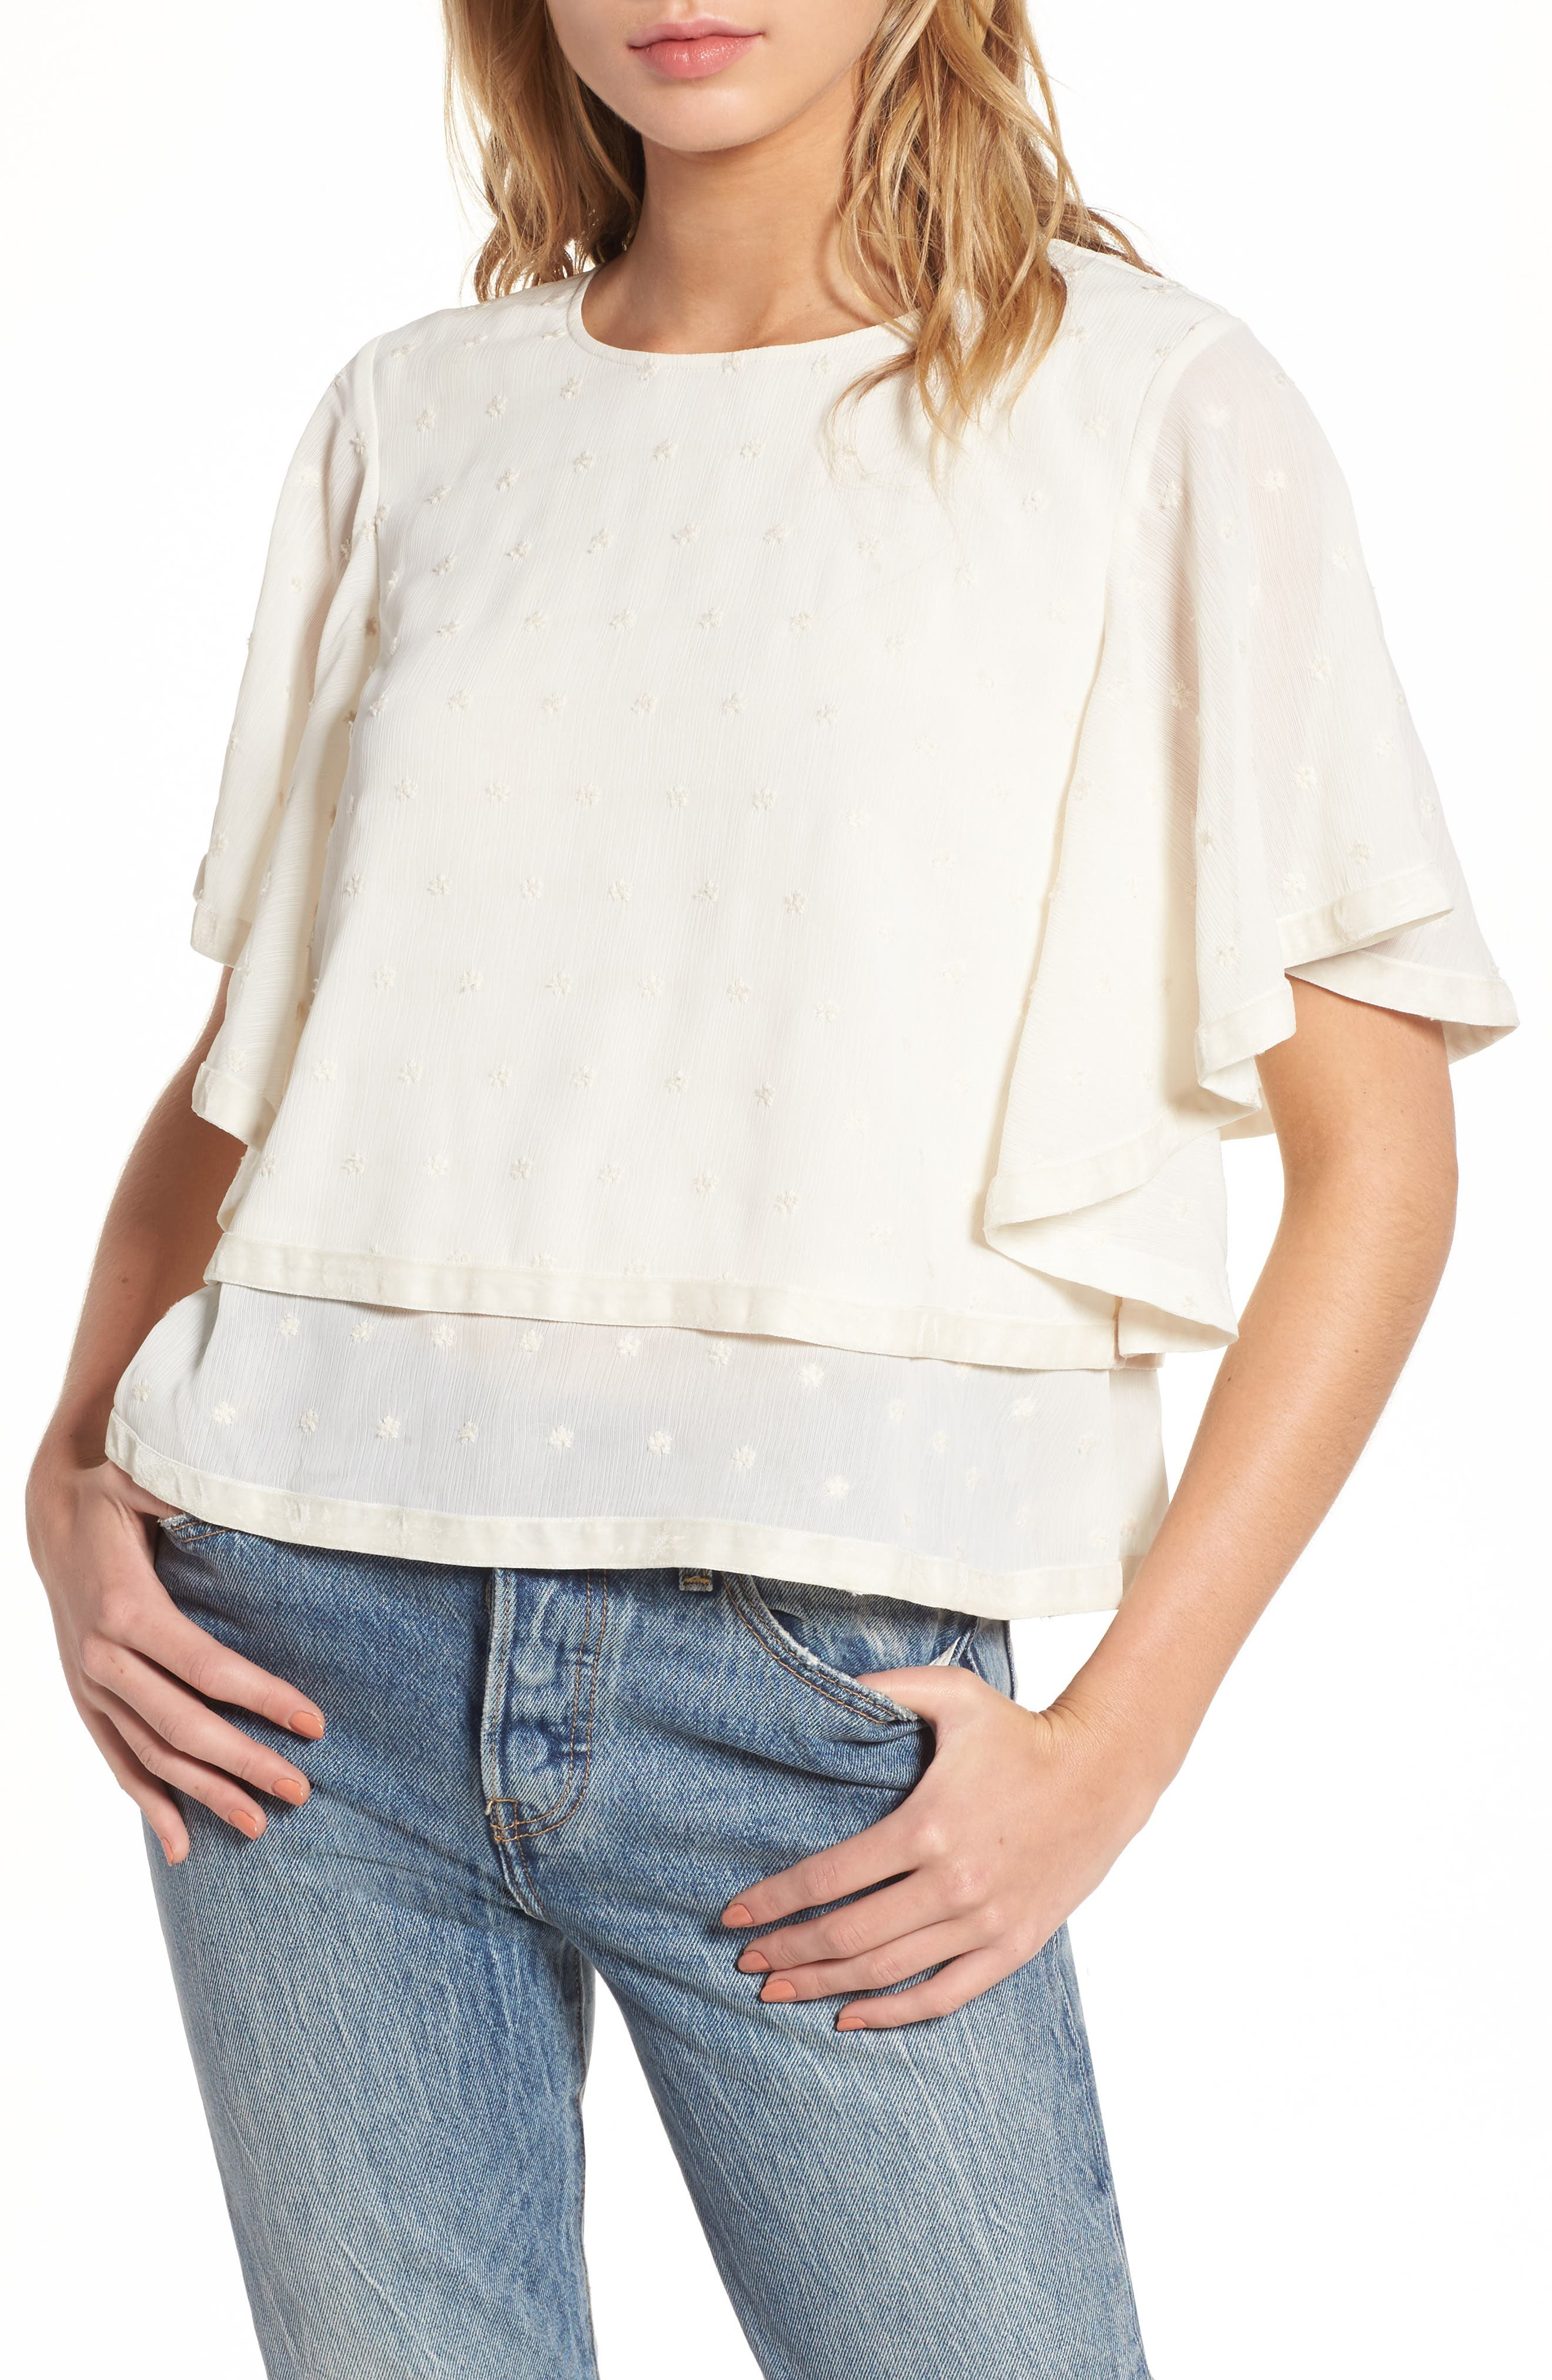 J.O.A. Cape Sleeve Top